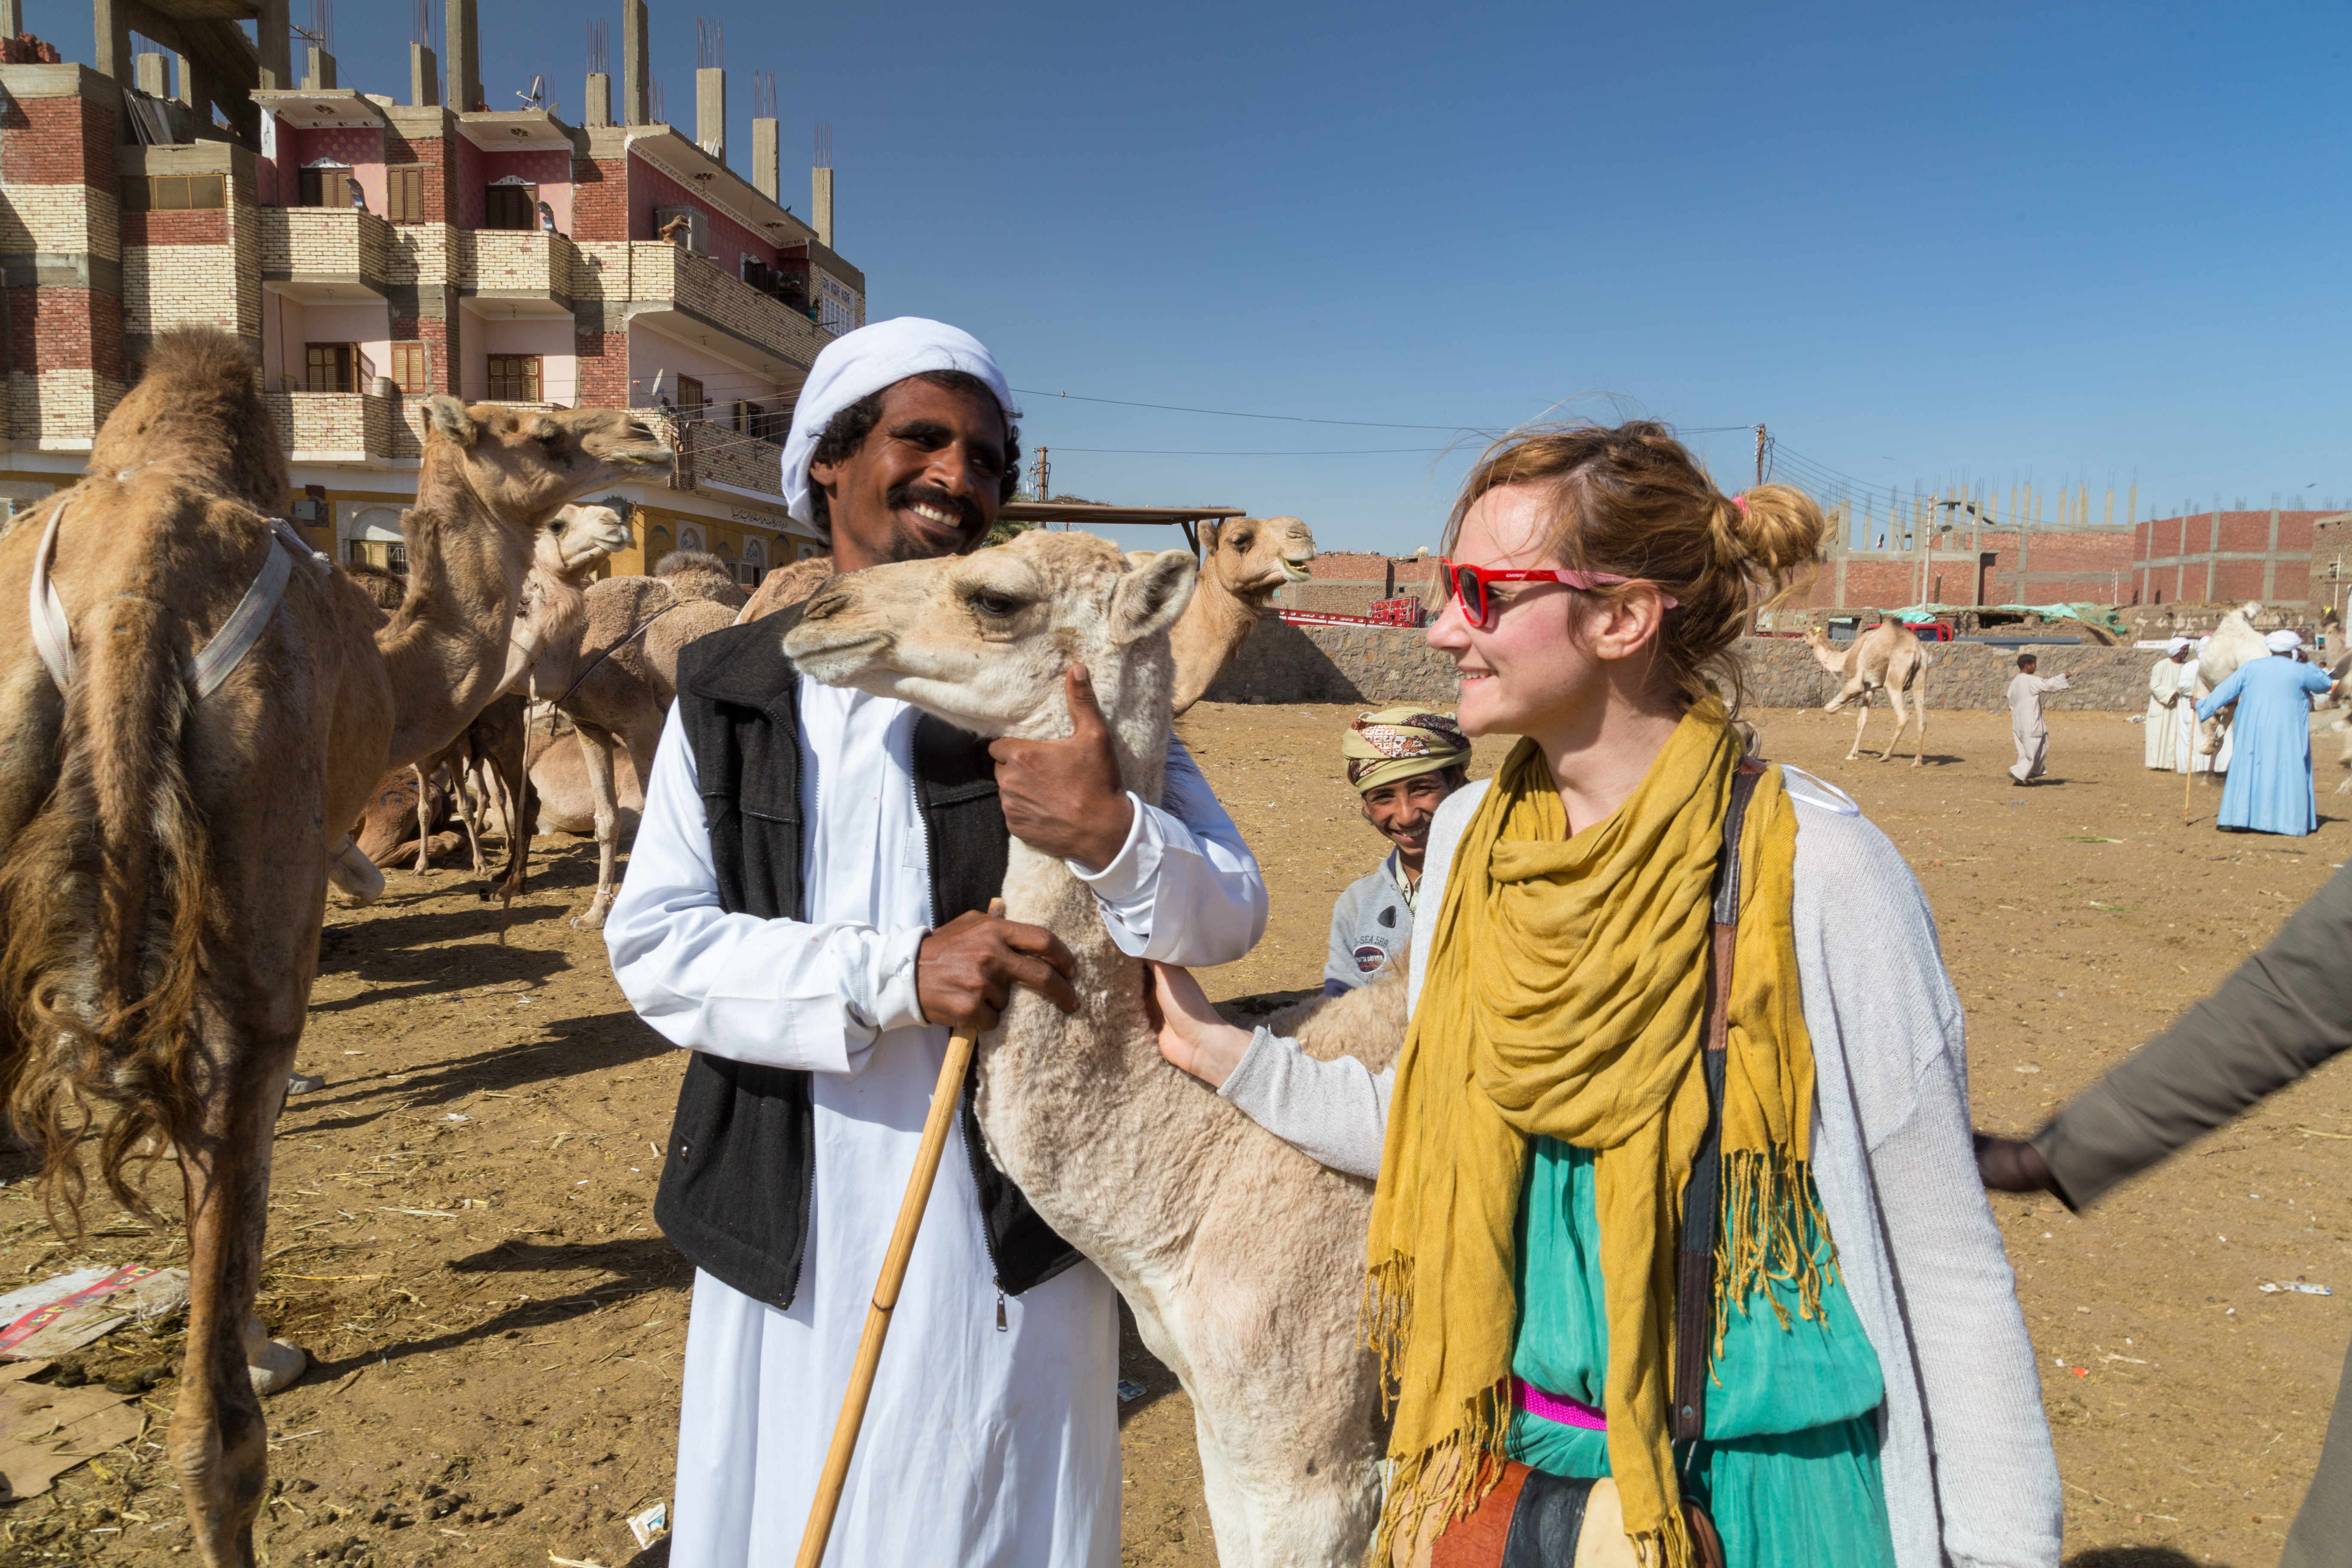 Tourist and local camel salesmen at camel market.